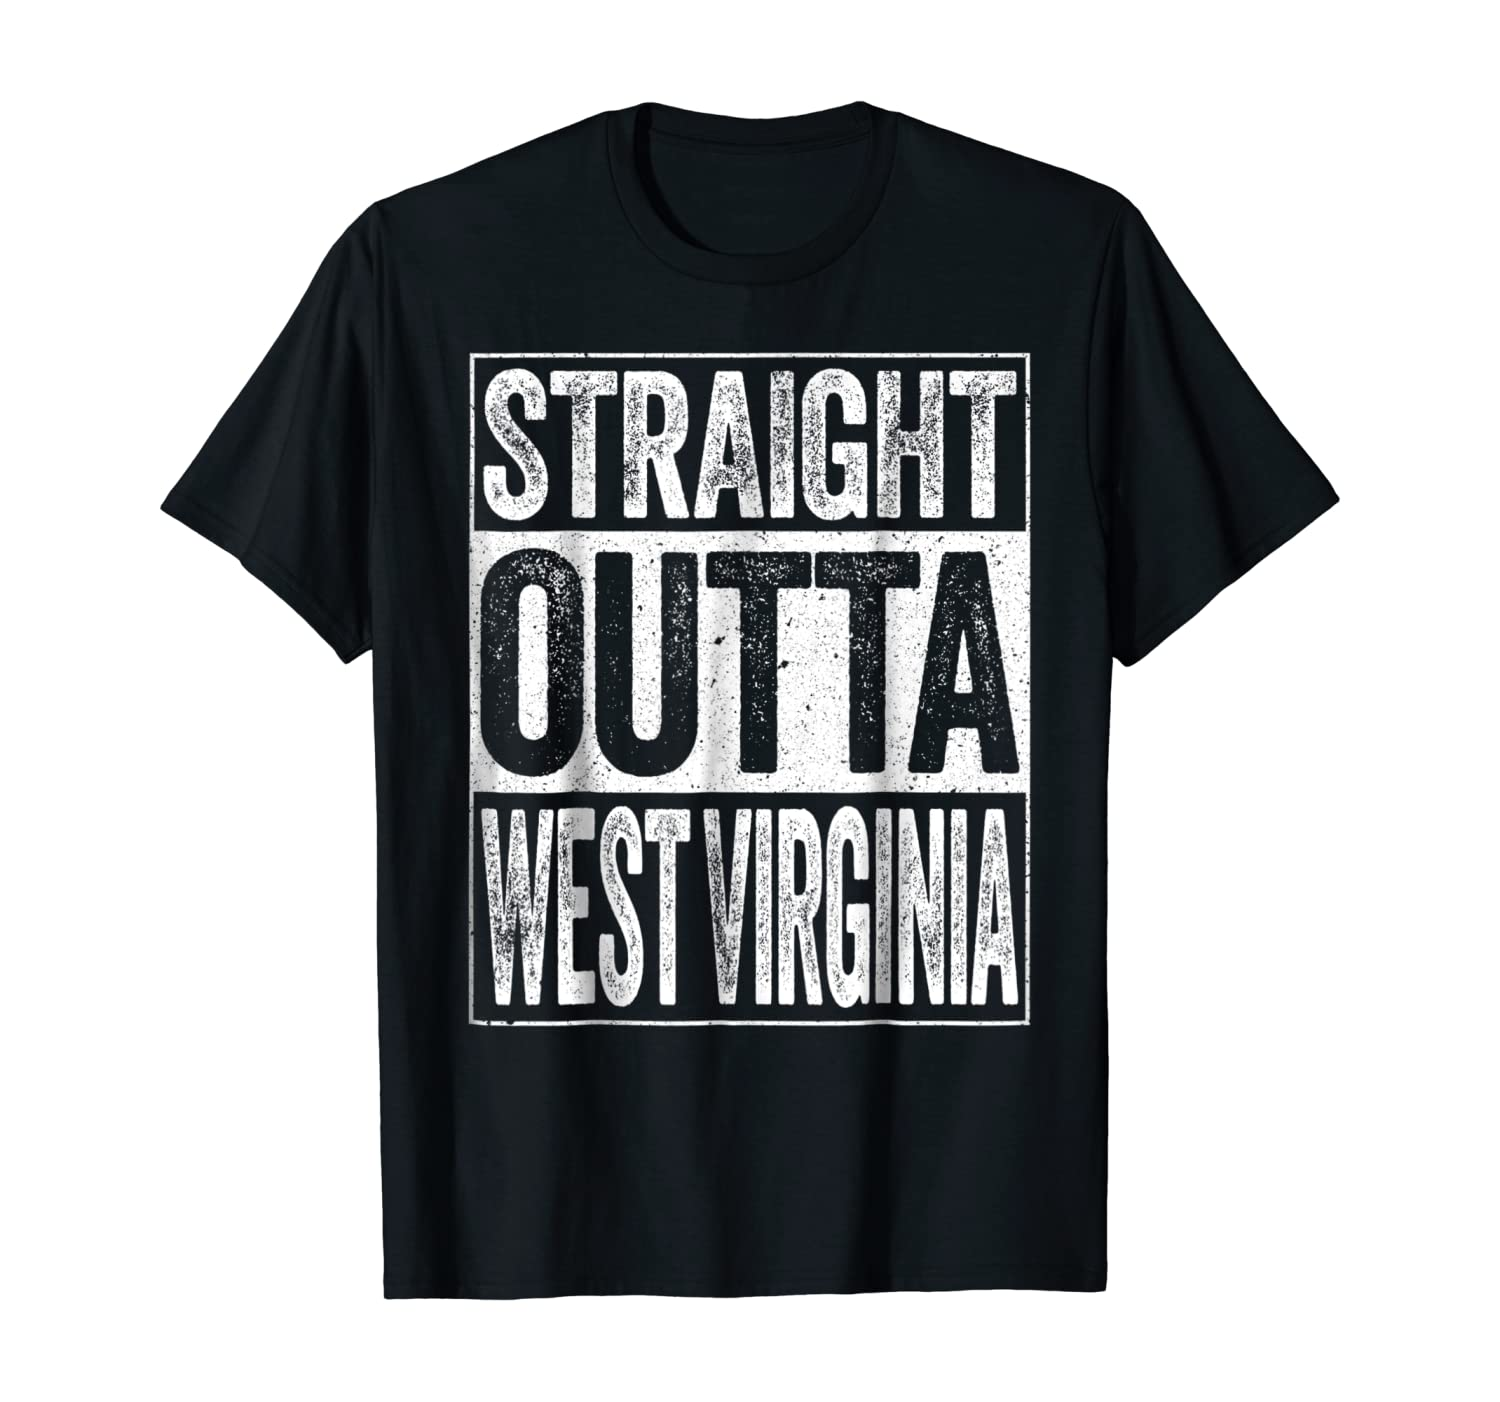 Straight Outta West Virginia T-Shirt WV State Gift Shirt